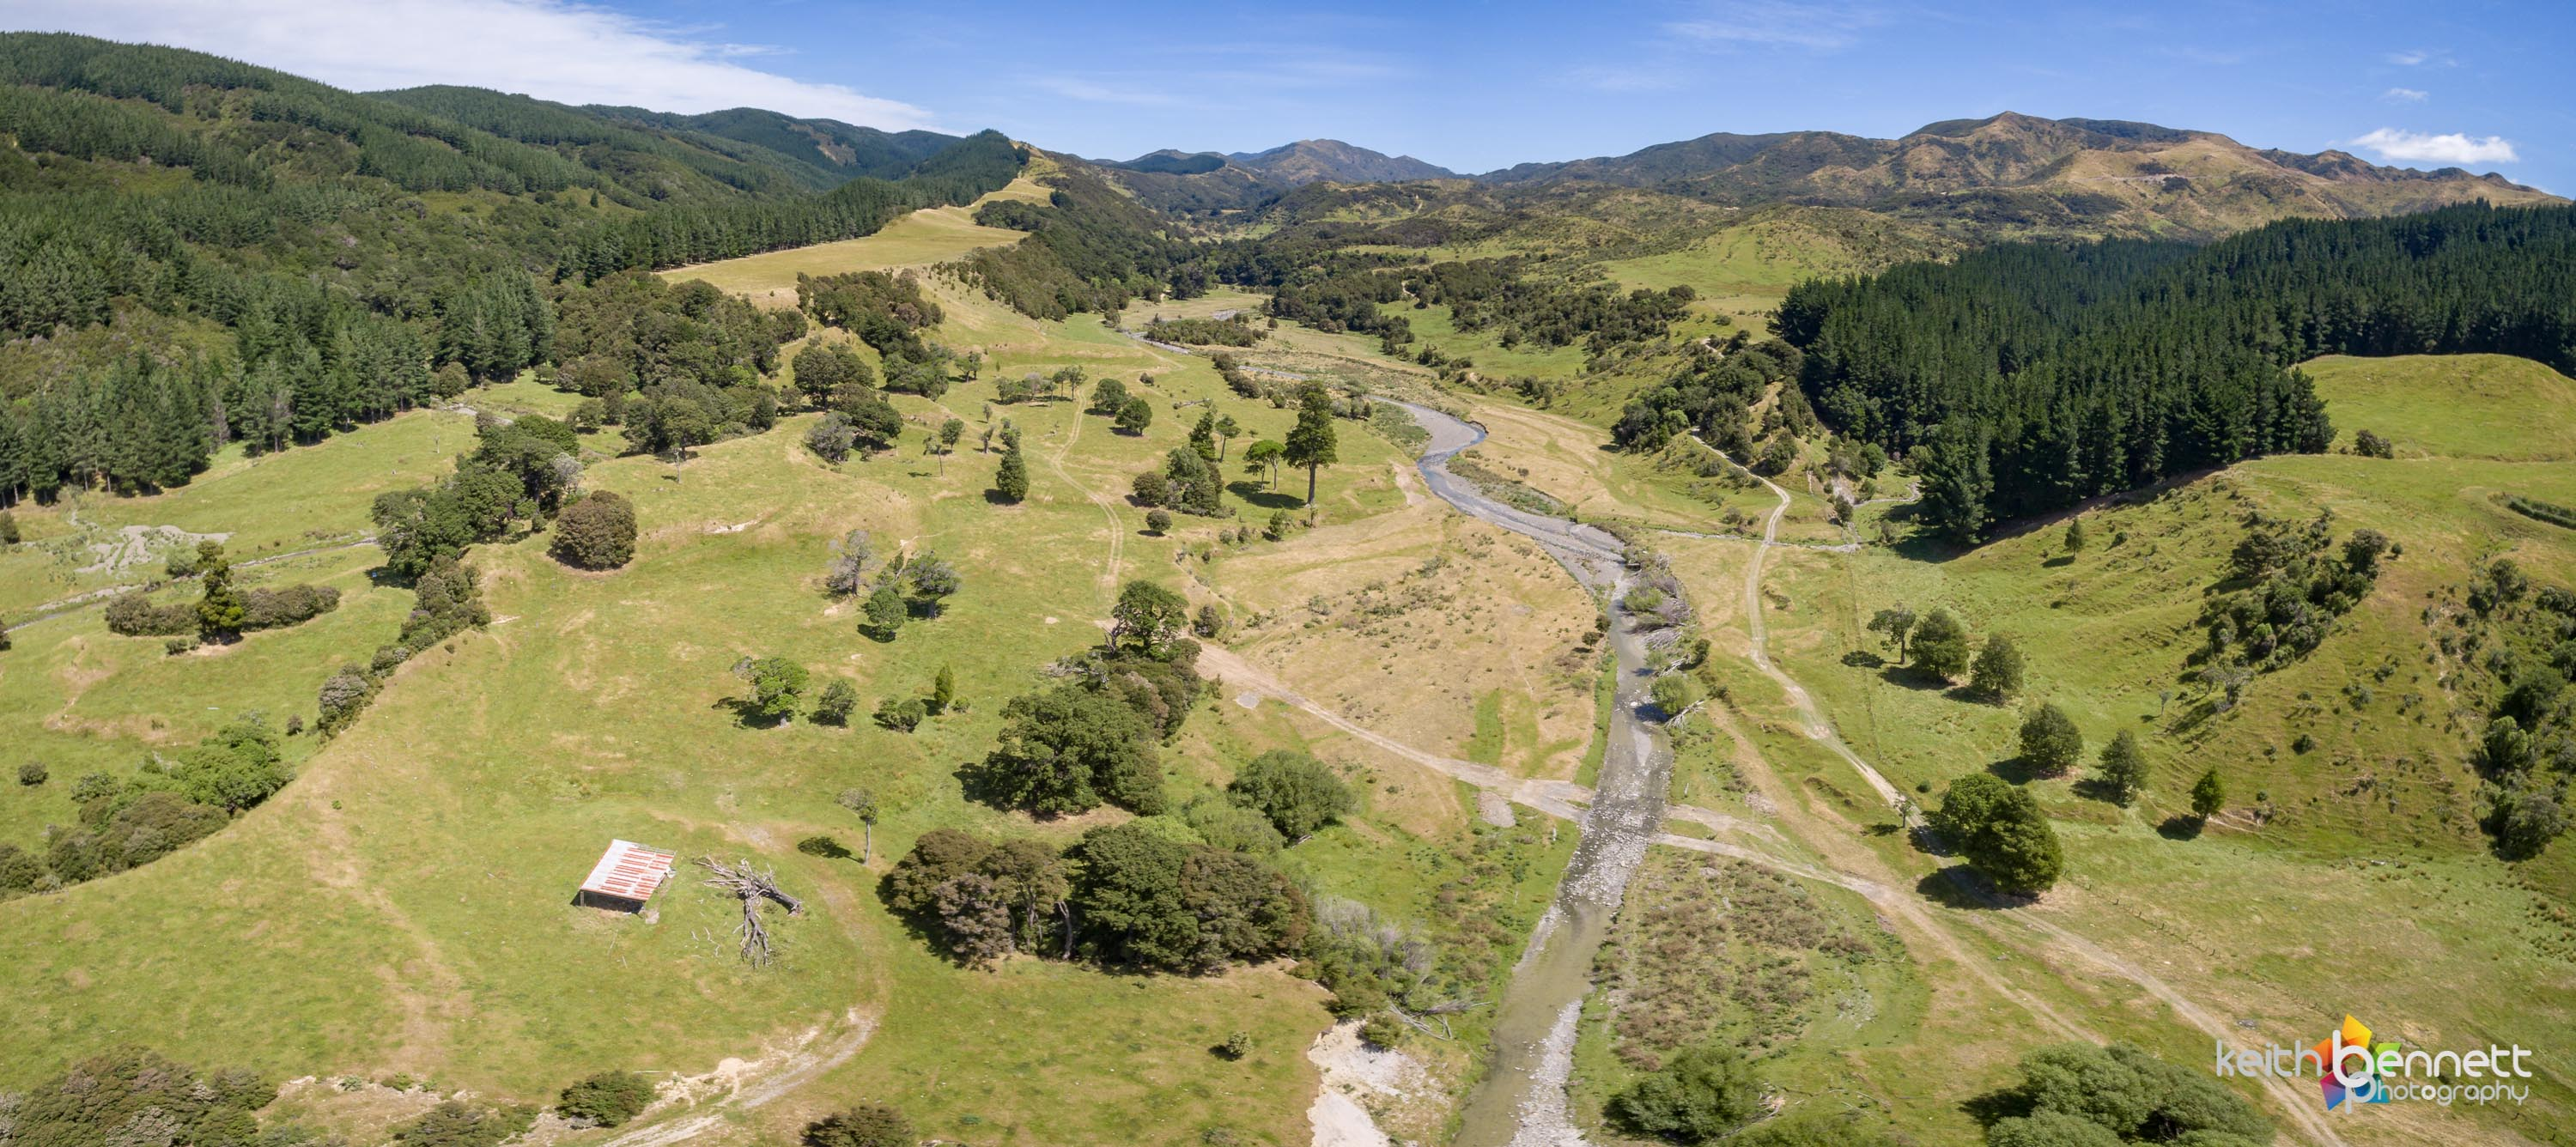 Terry Wairarapa Property Video 0512-Pano